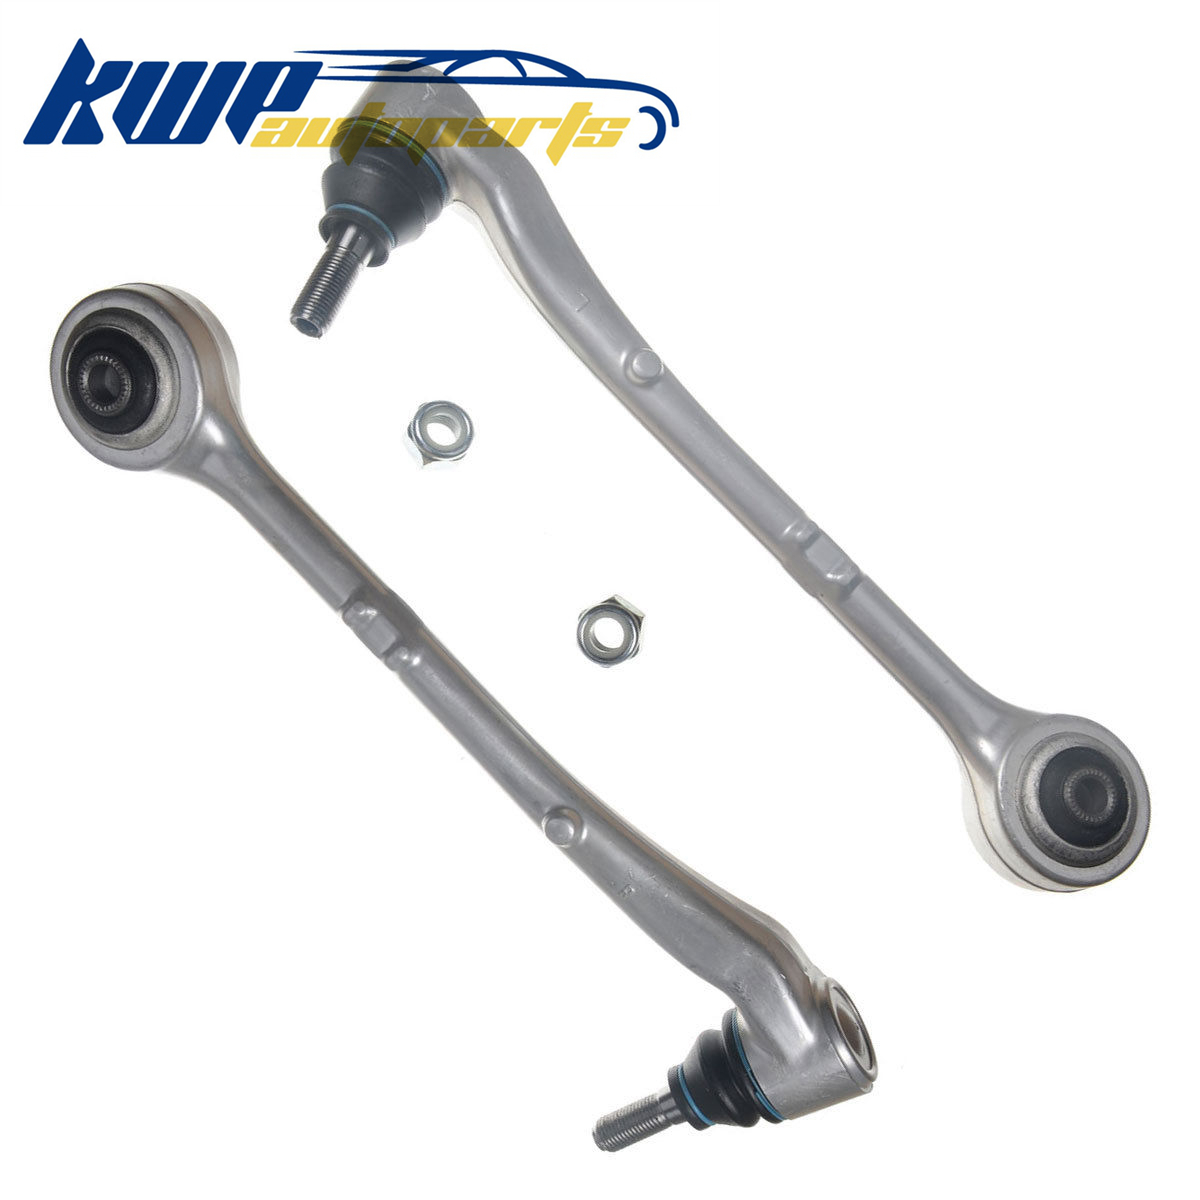 Front Pair of Lower Control Arms for BMW E38 740i 740iL 750iL 1995 1996 1997 1998 2001 #31121142087,31121142088